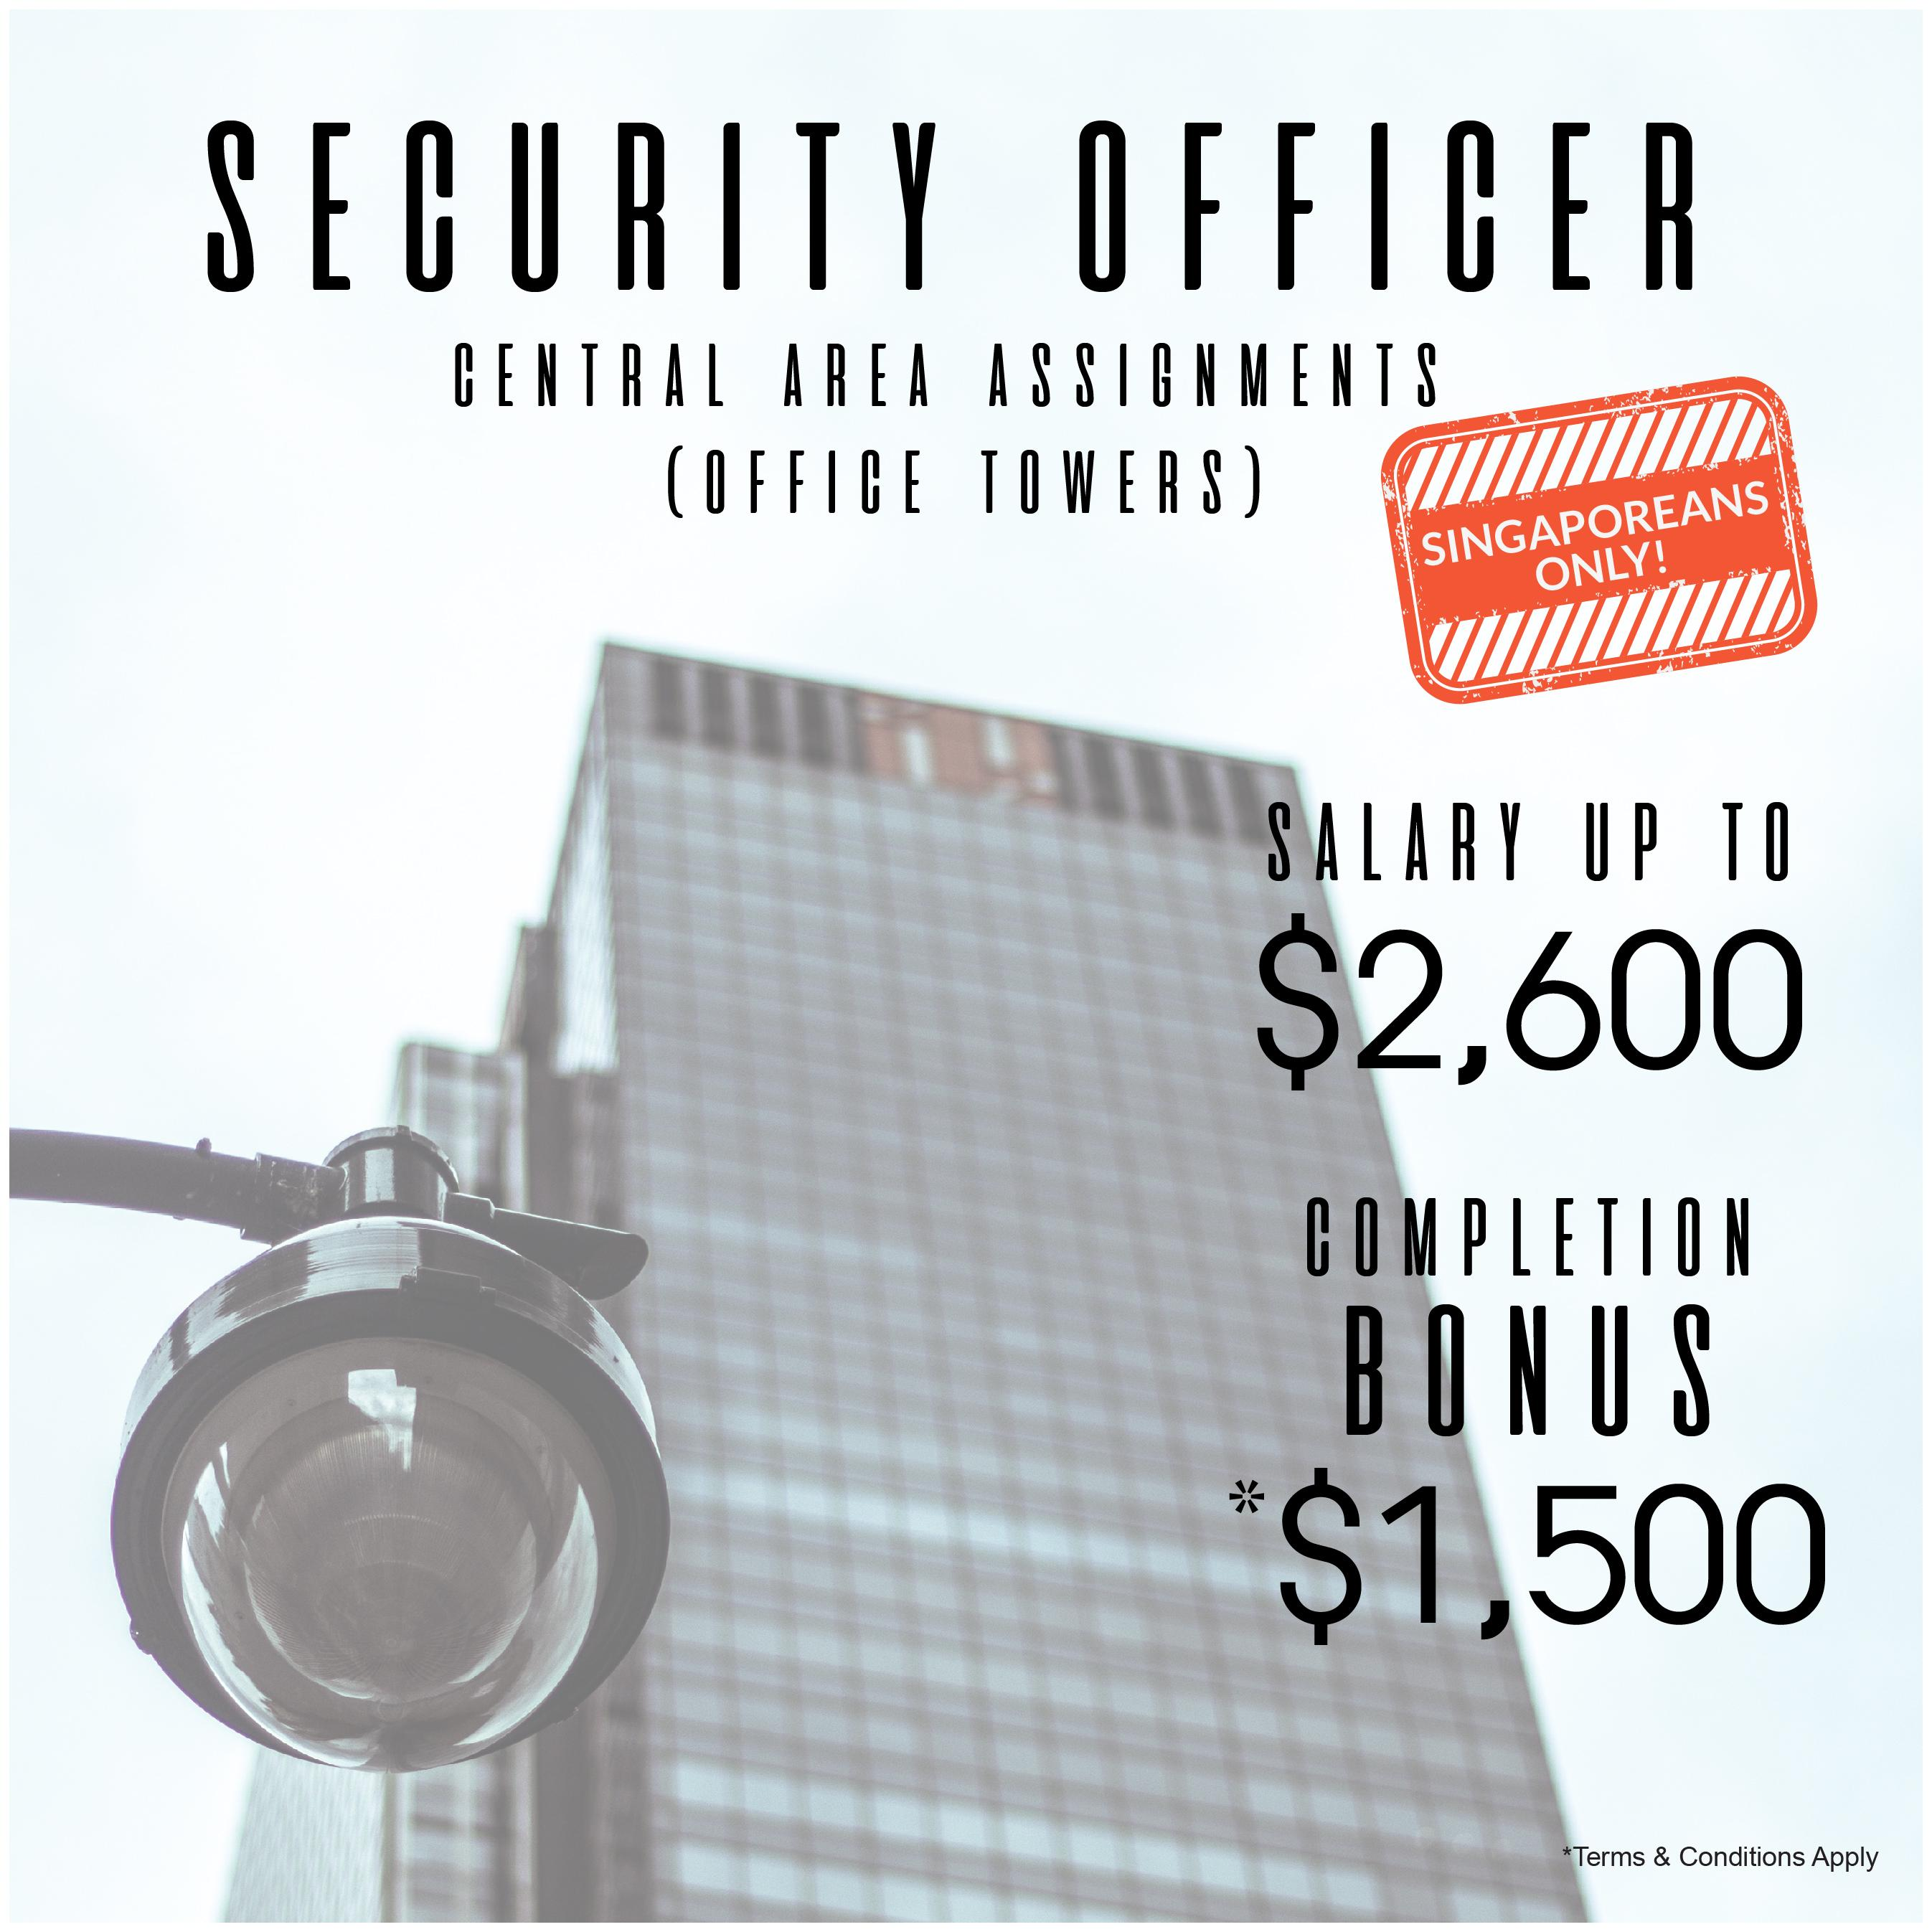 Security Officer - Central Area Assignments (Office Towers)